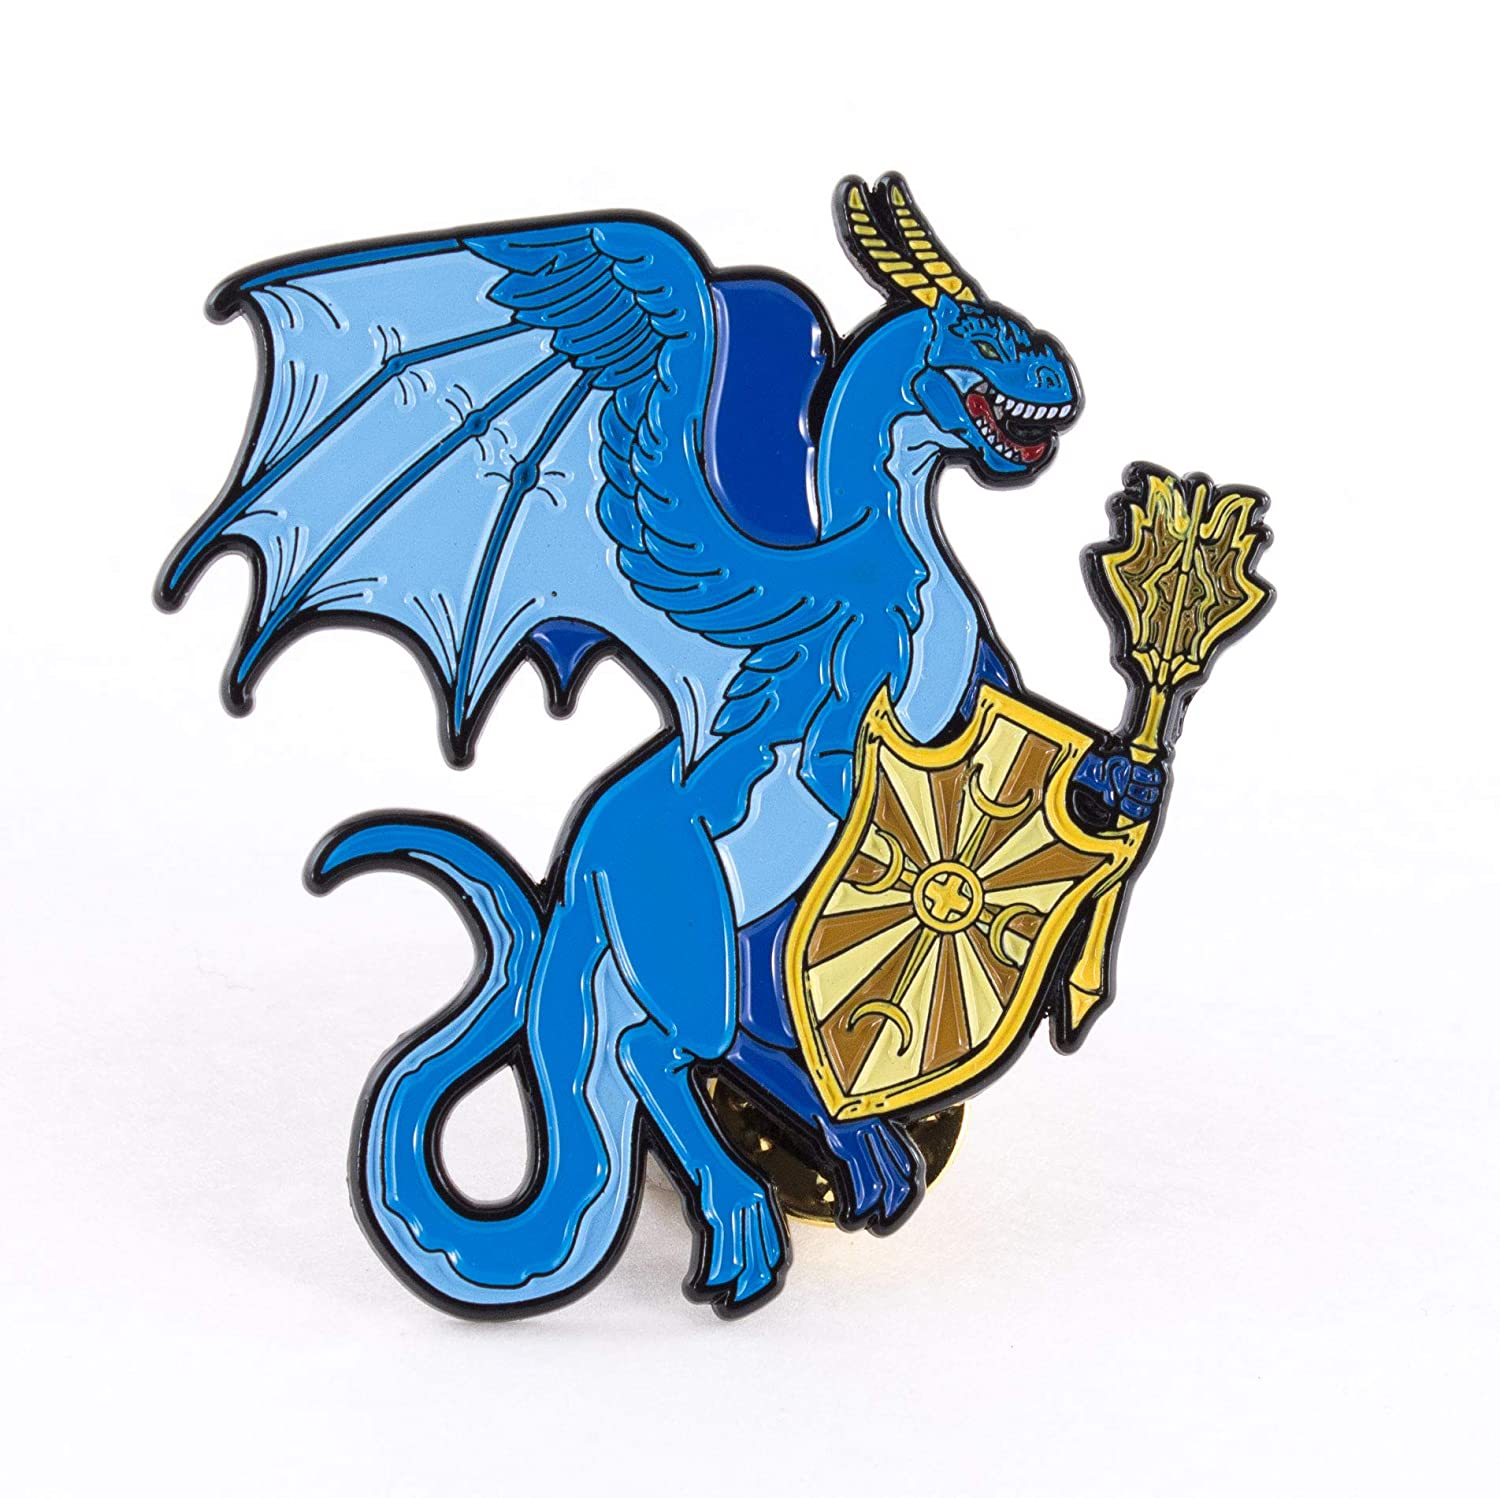 The Warrior Dragon Dungeons and Dragon Themed Dragon Enamel Pin